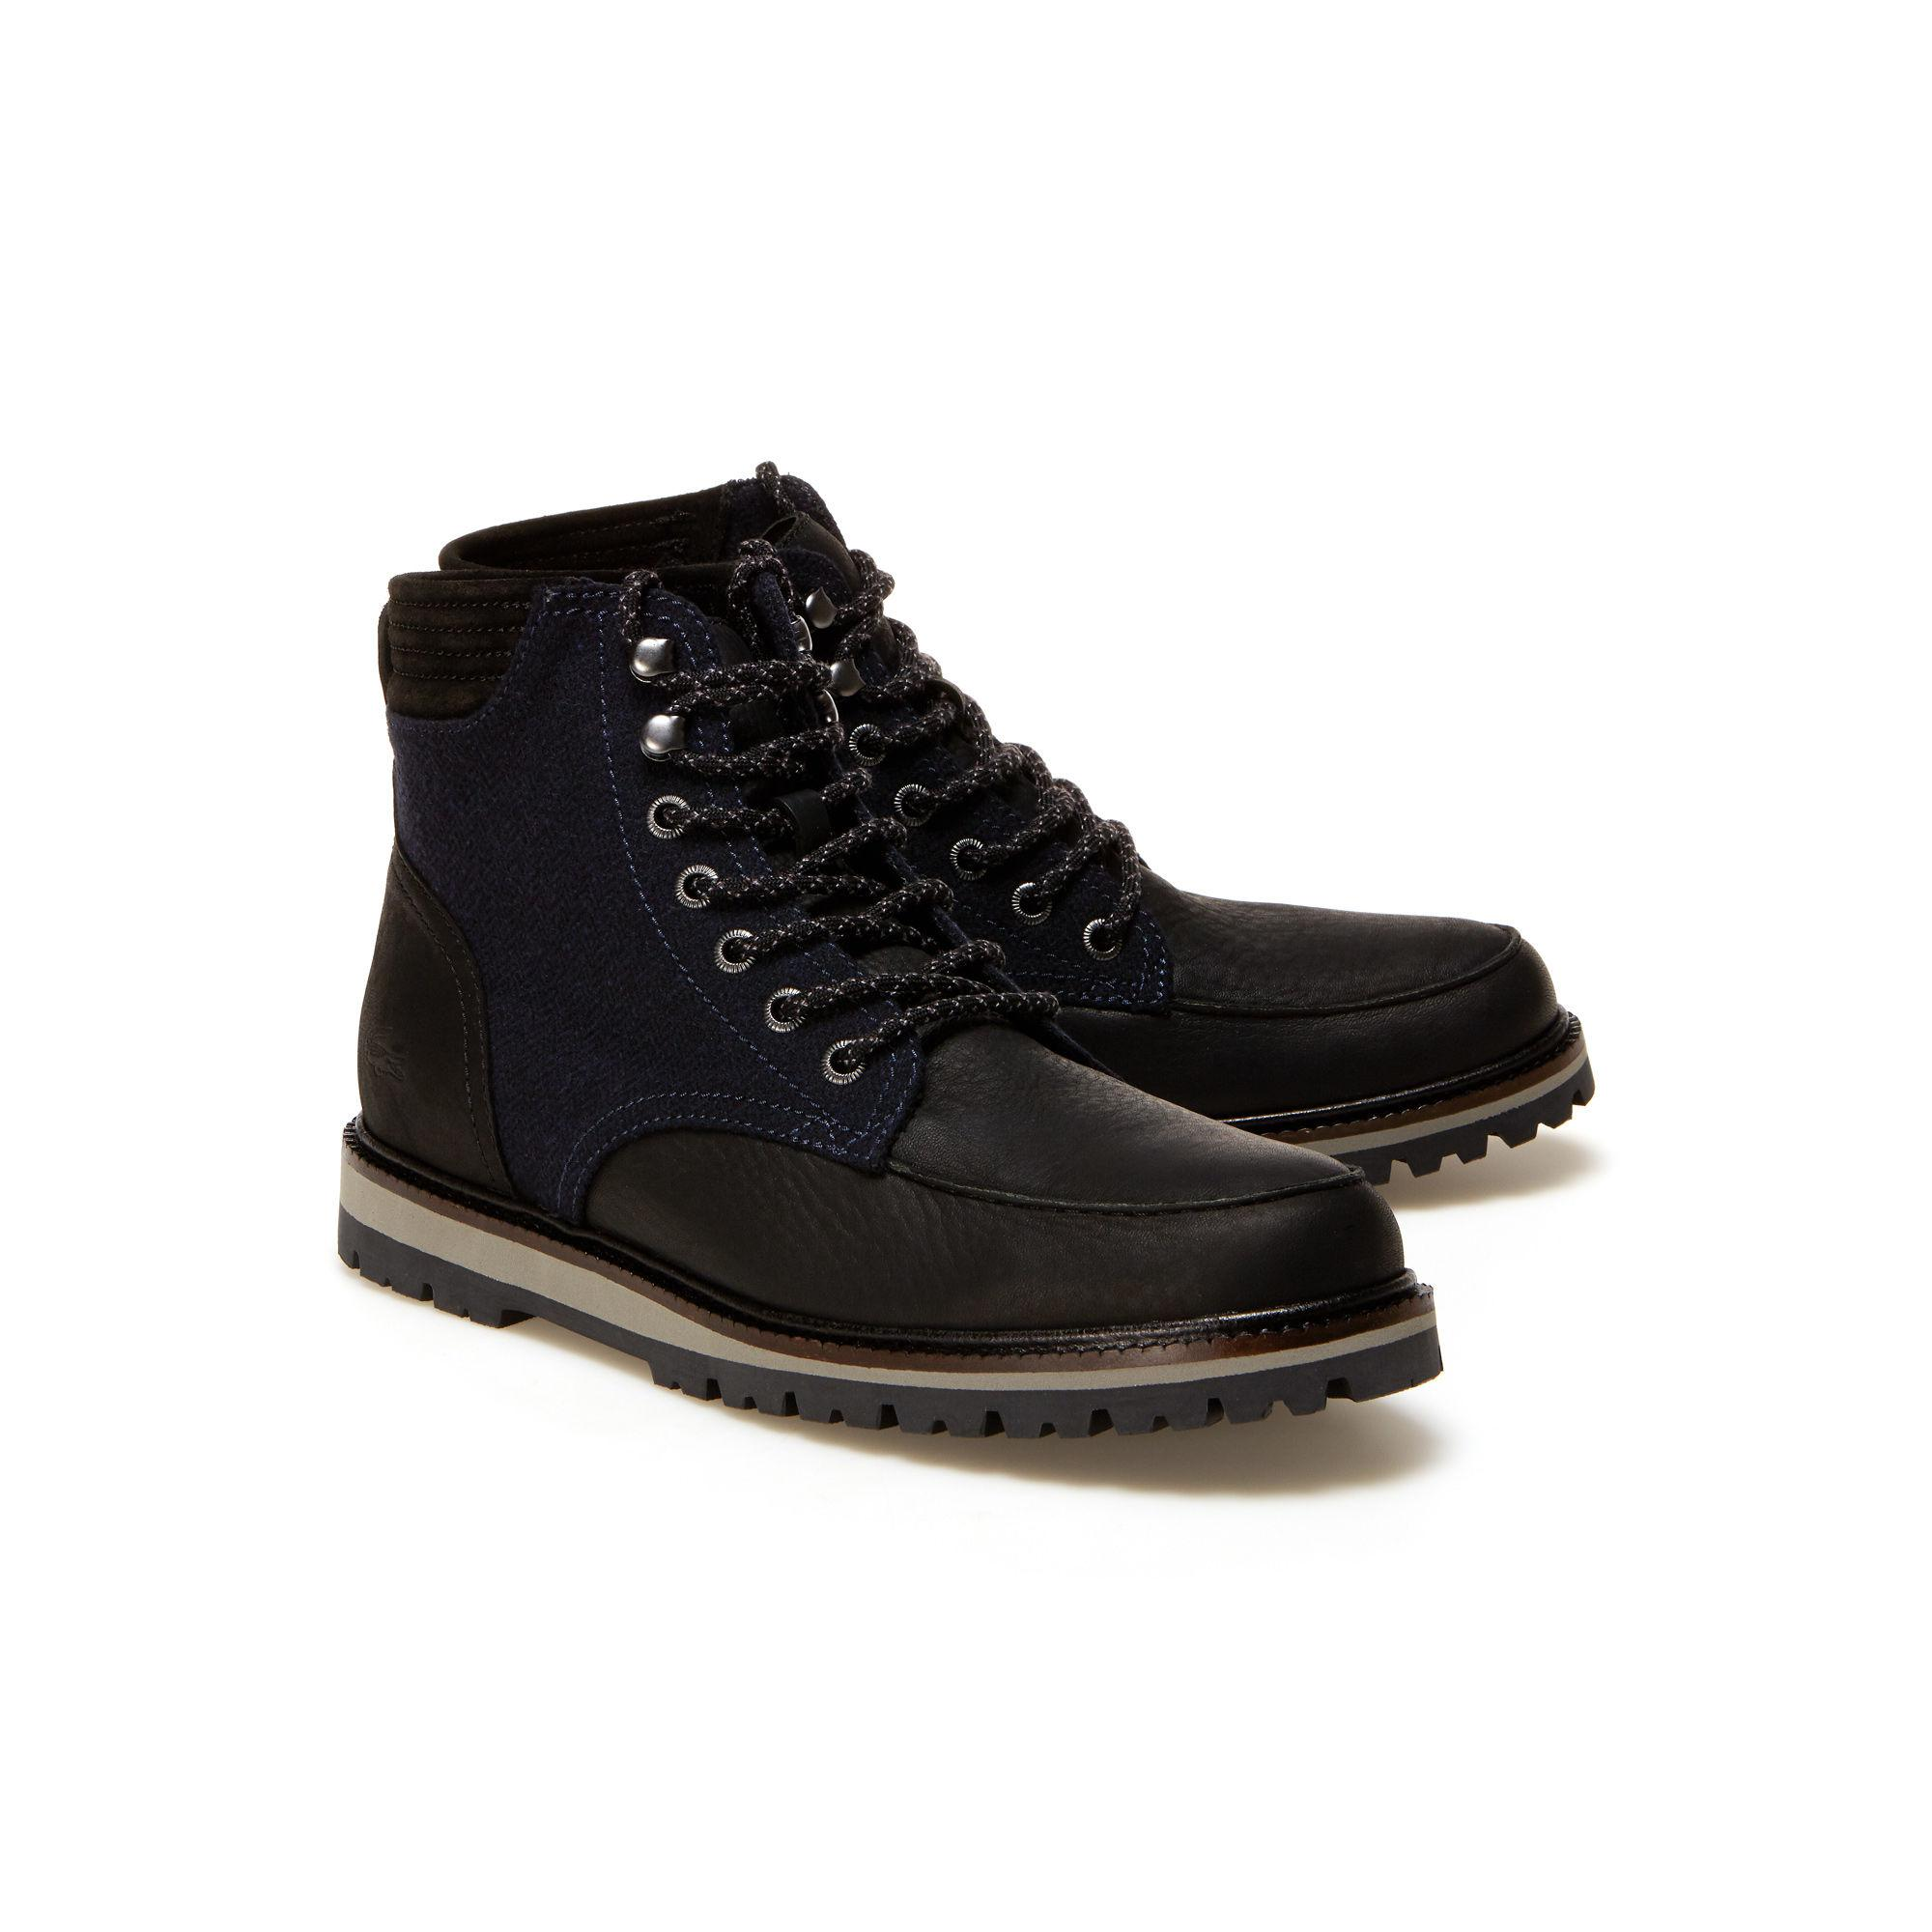 f4c4eab459cfb Lacoste - Black Leather Montbard Boots for Men - Lyst. View fullscreen